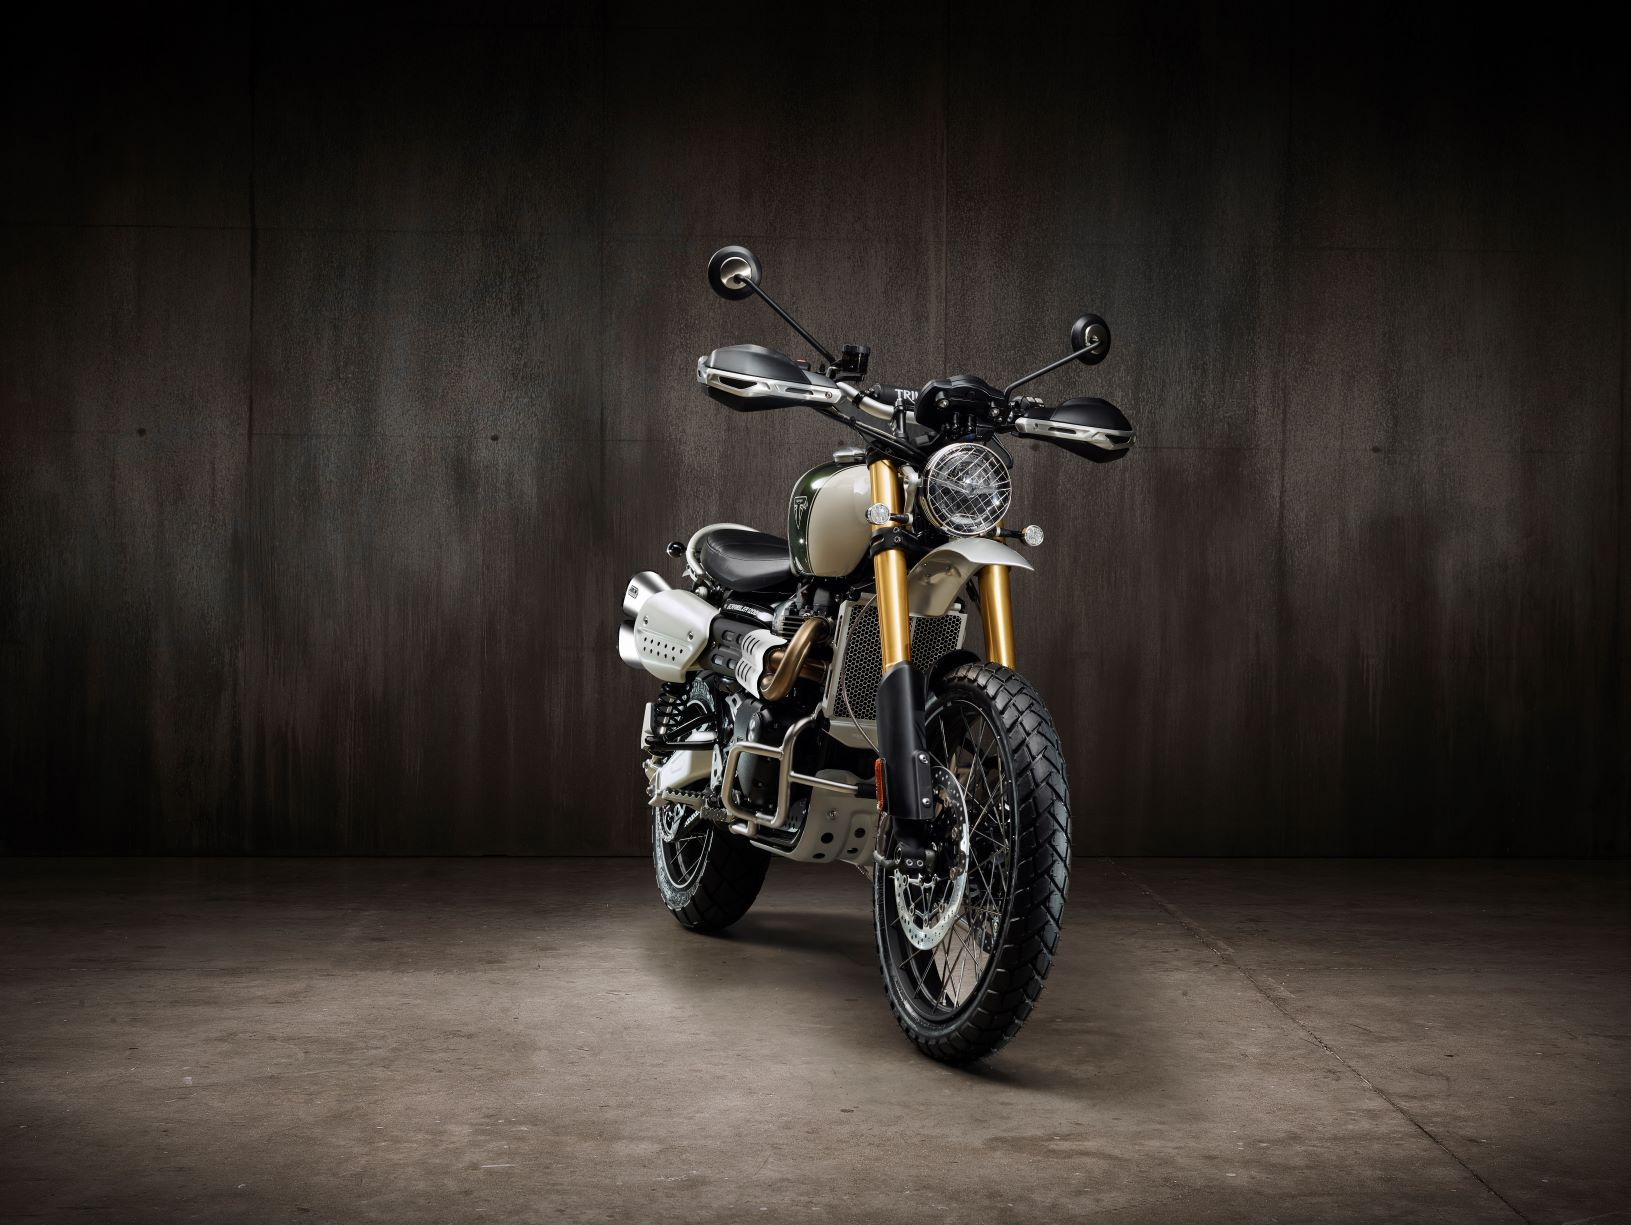 2019 Triumph Scrambler 1200 Xc And Xe Advanced Tech In A Retro